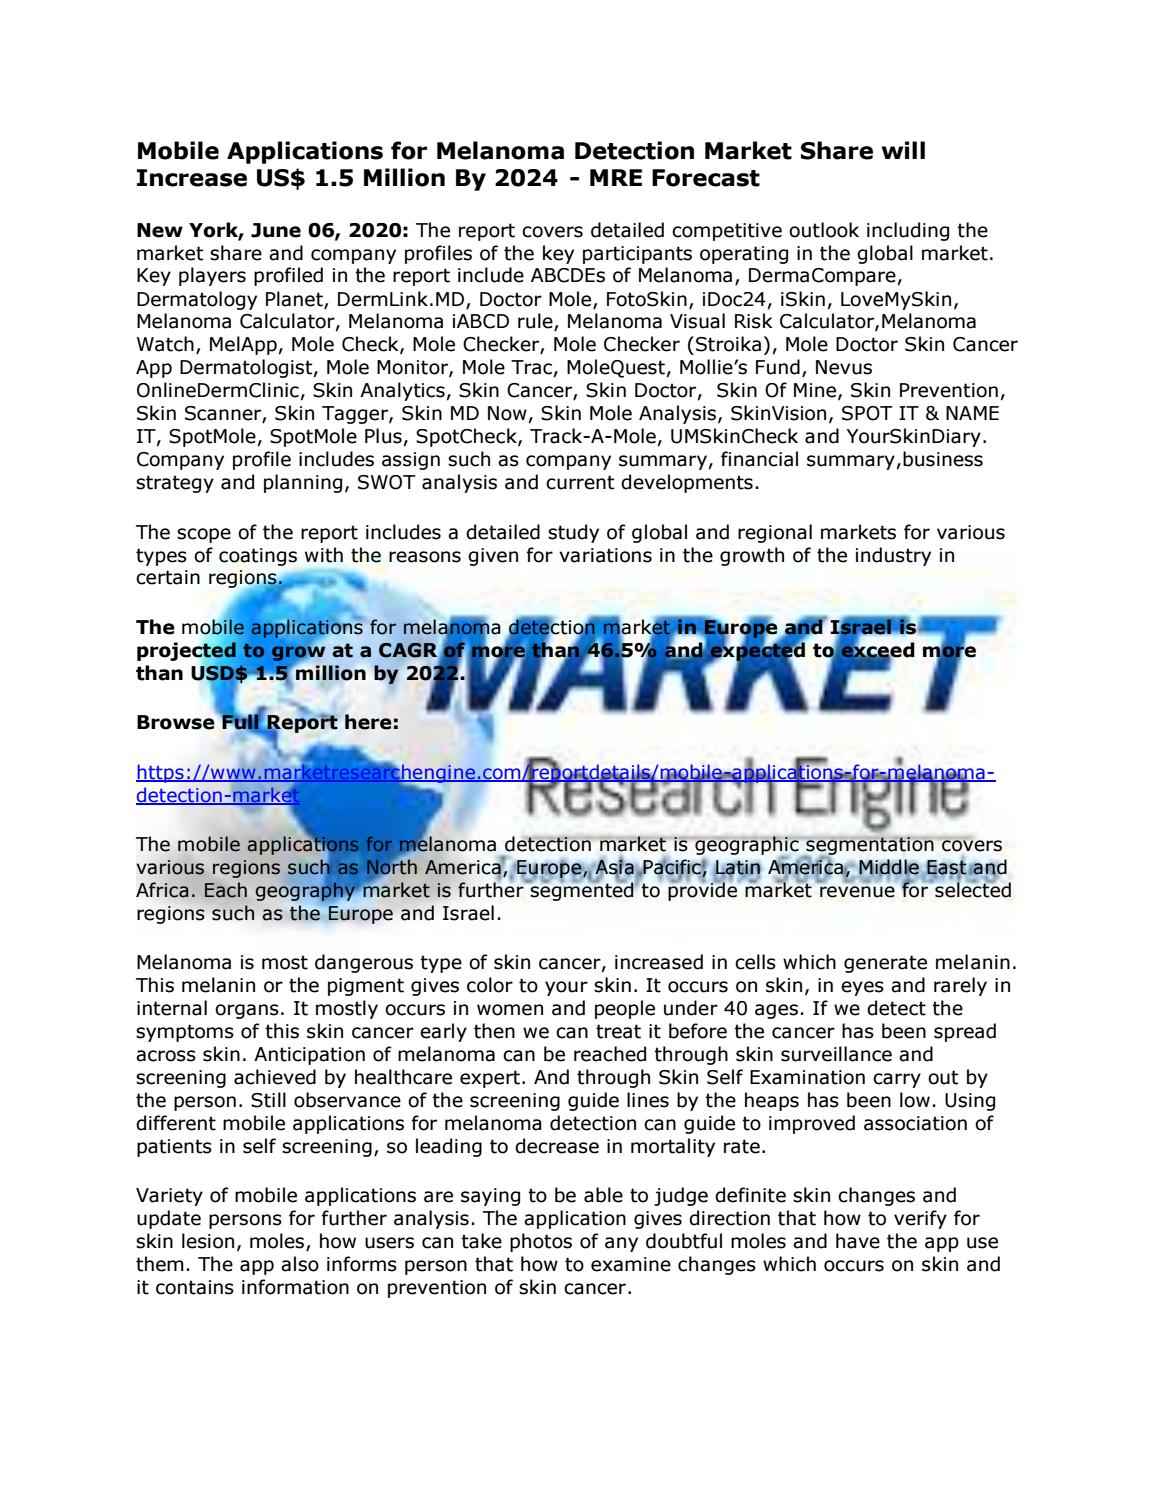 Mobile Applications For Melanoma Detection Market By Danish Smith Issuu